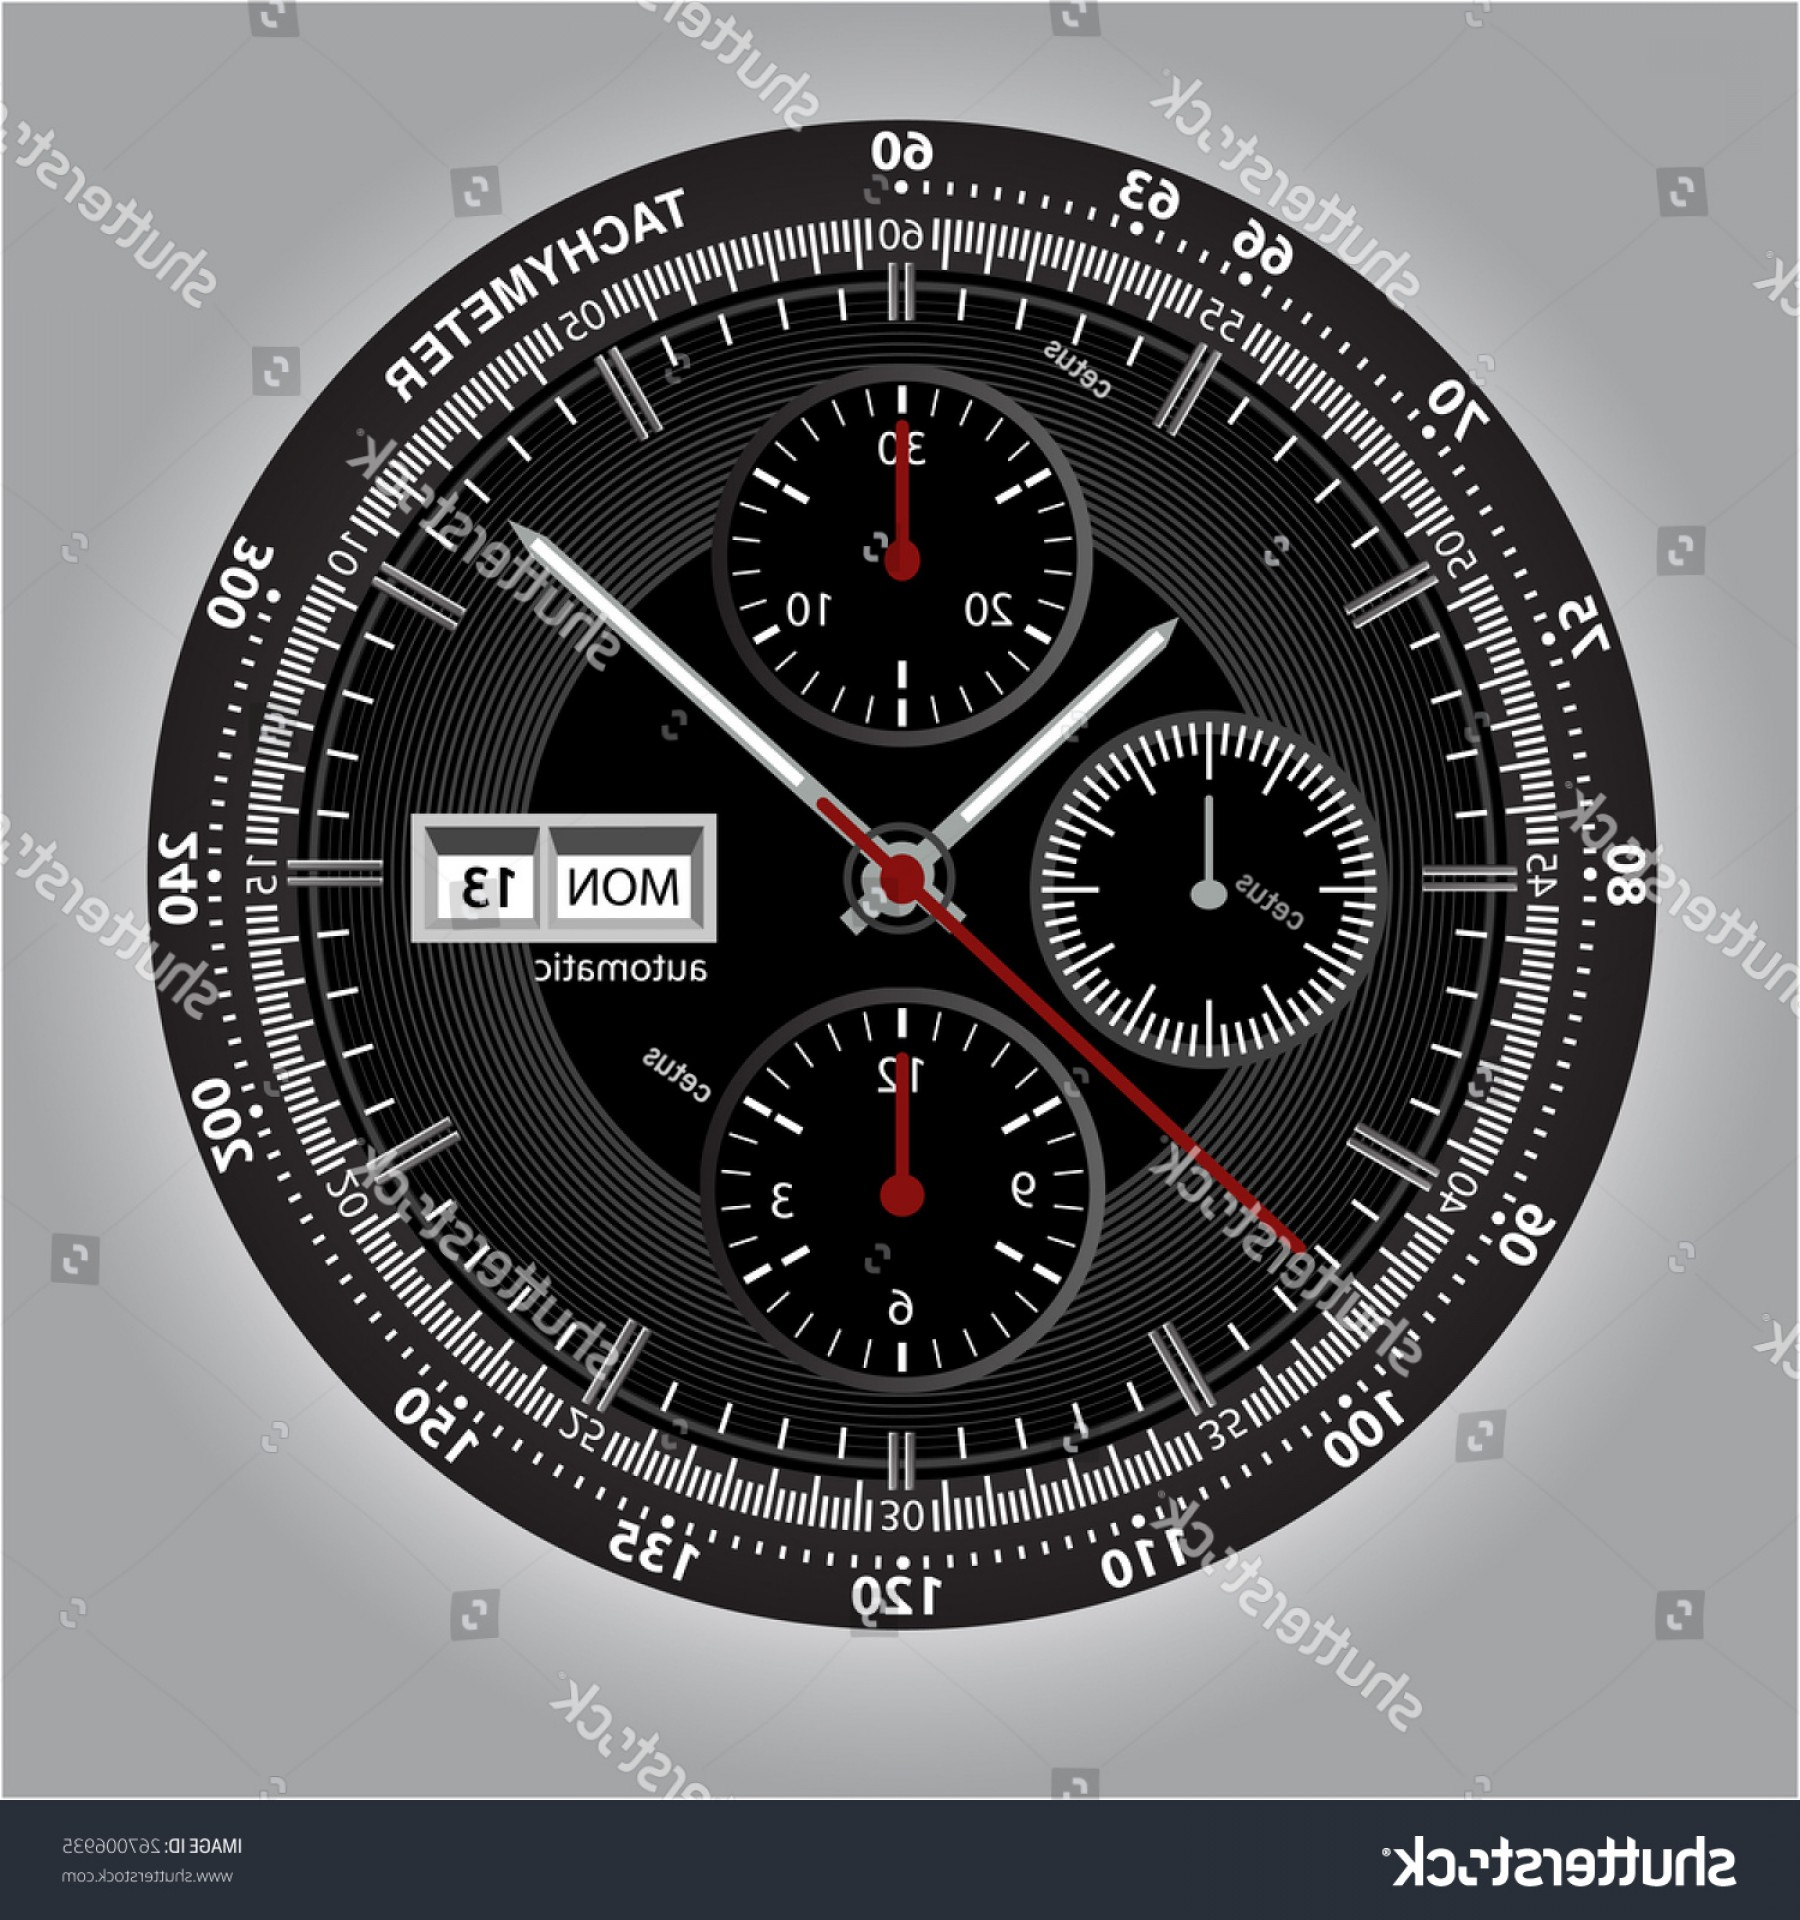 Watch Face Vector: Vector Watch Handwatch Illustration Image Wrist